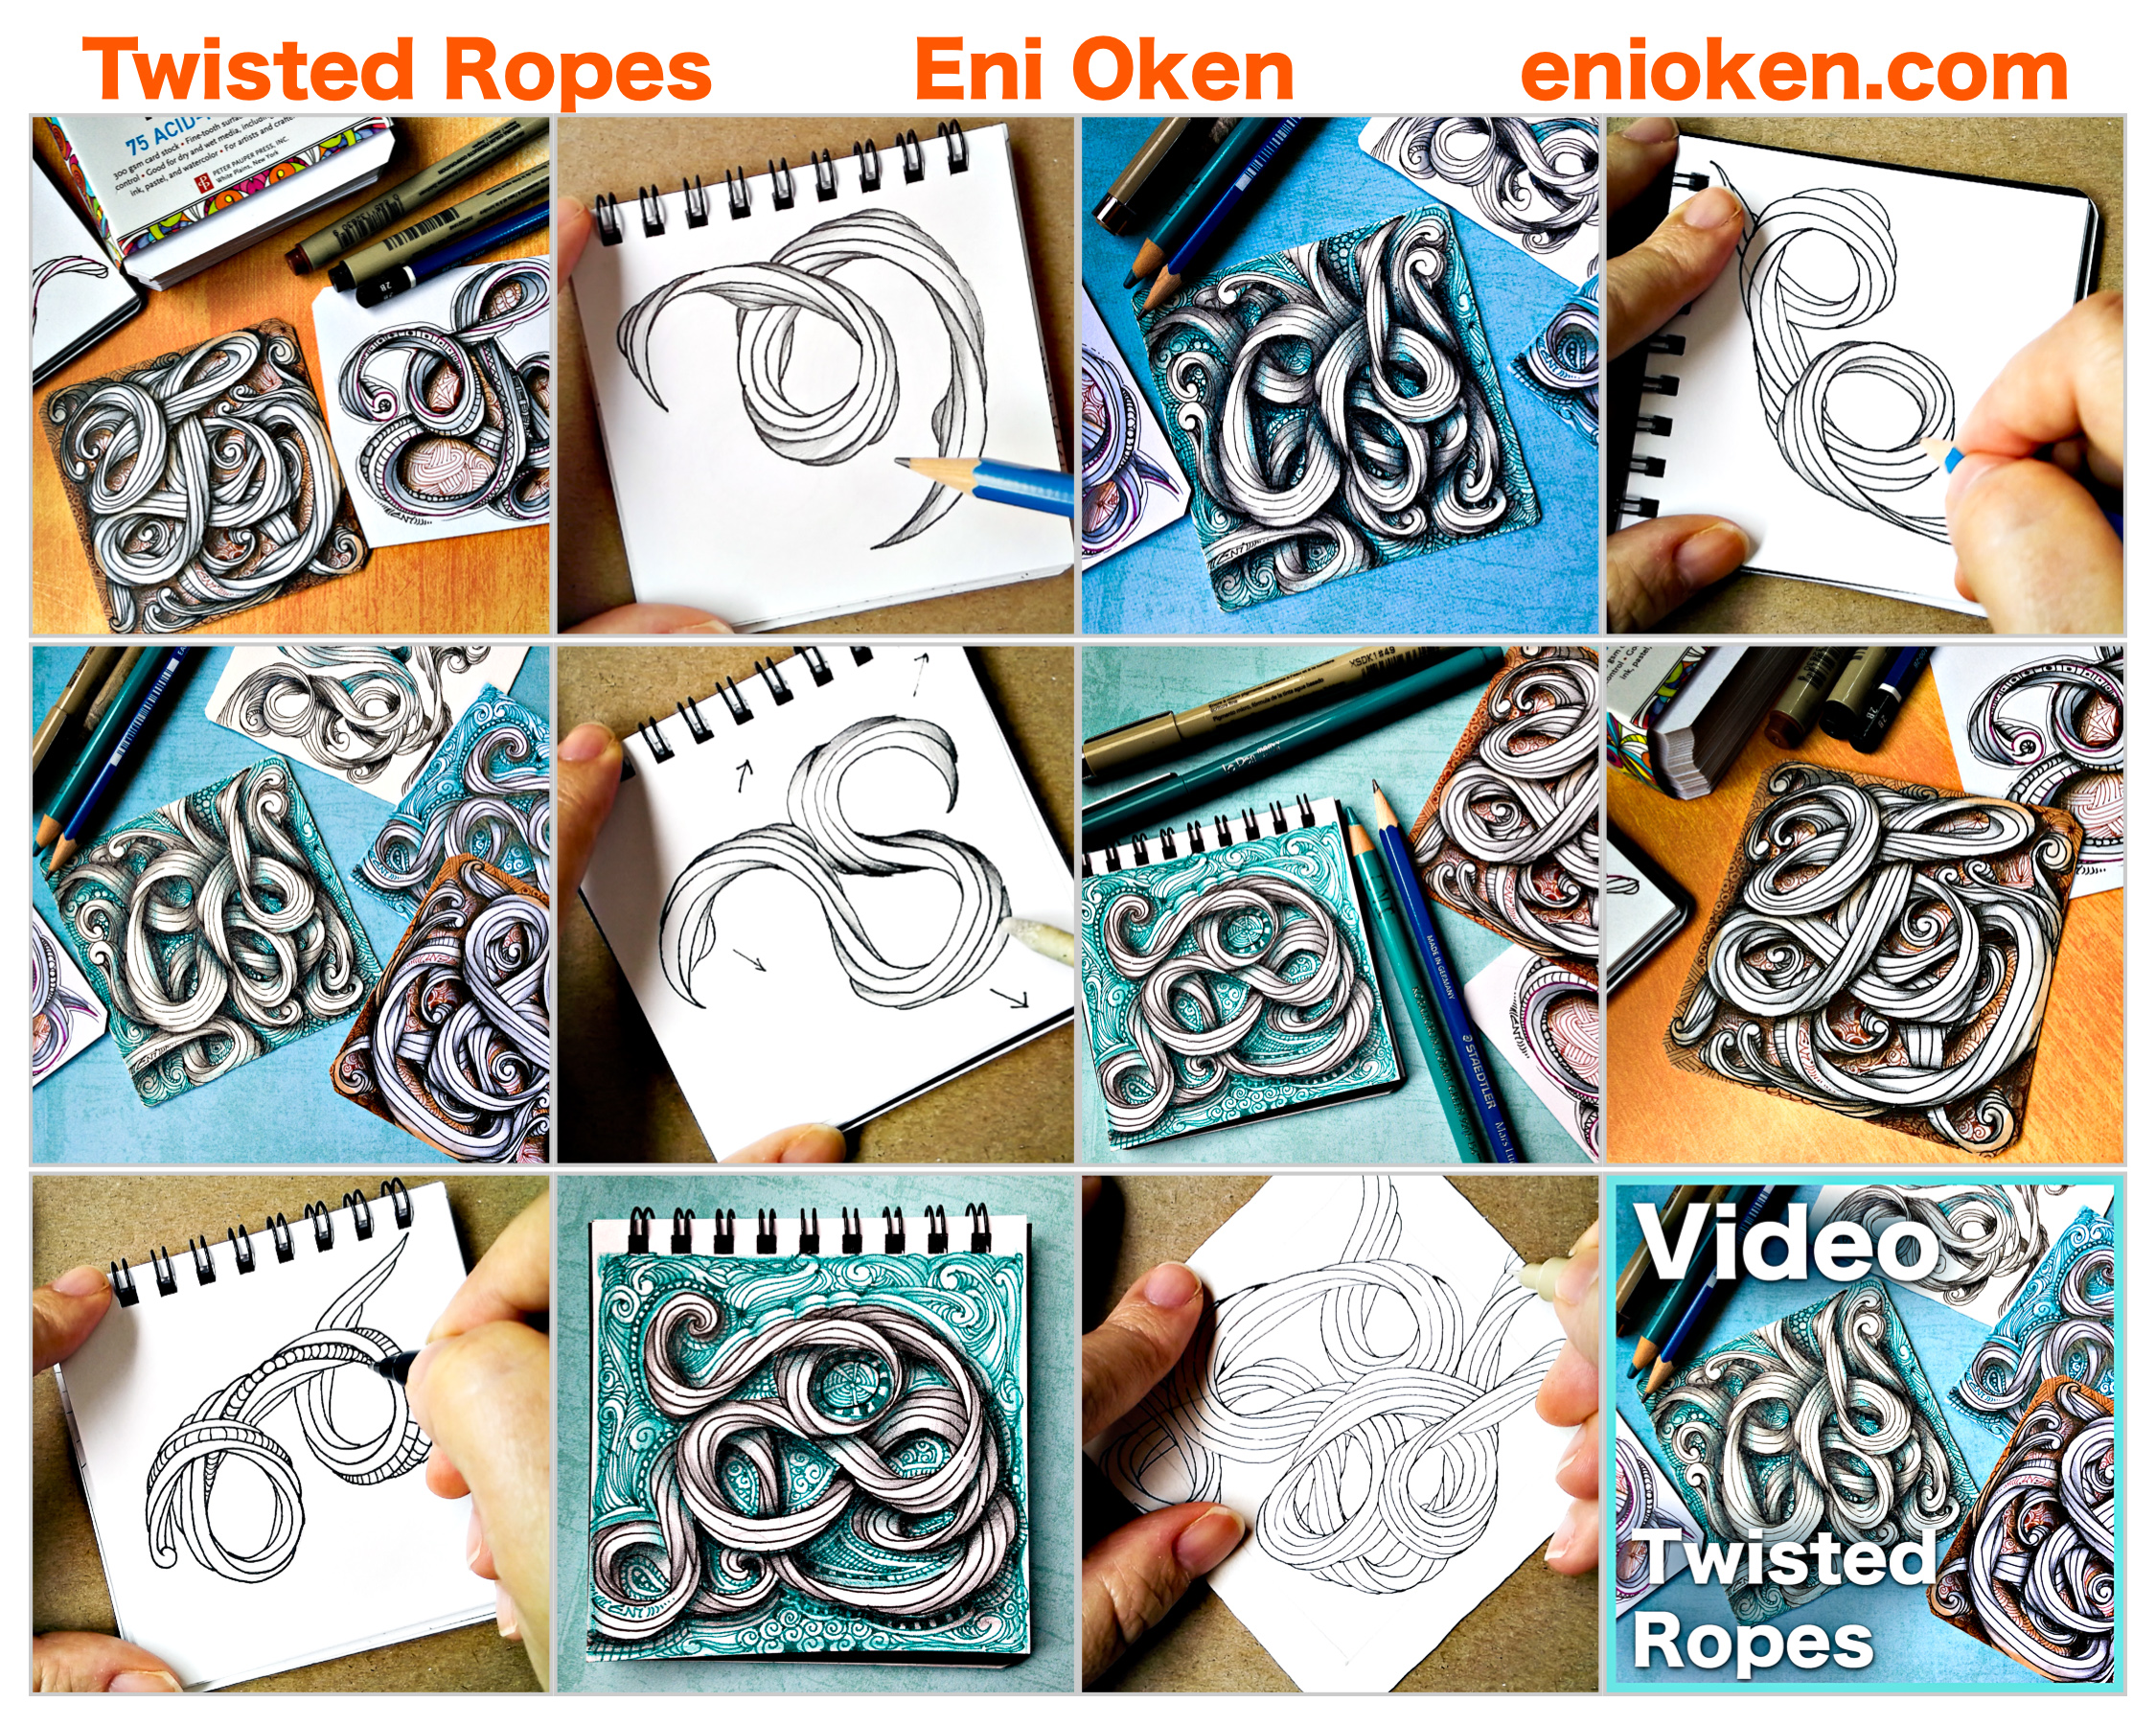 Learn how to create amazing twisted ropes • enioken.com